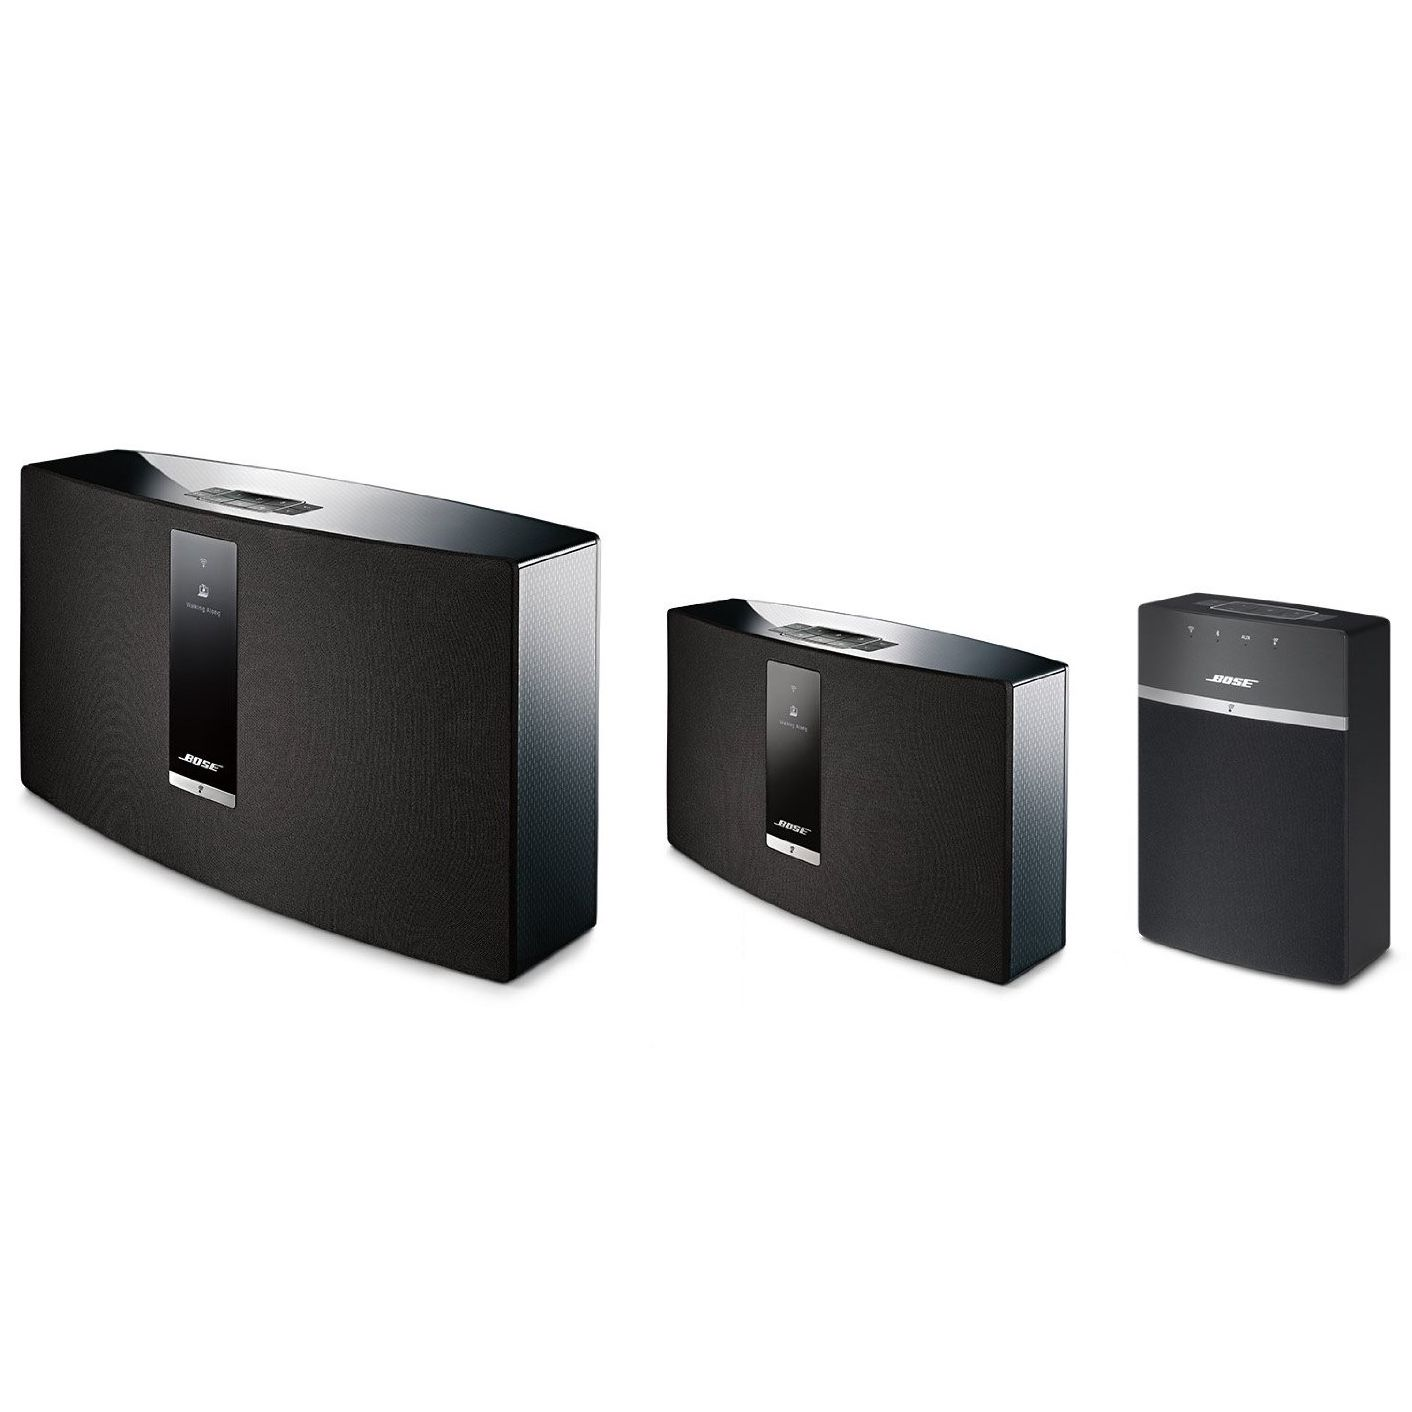 Bose SoundTouch speakers